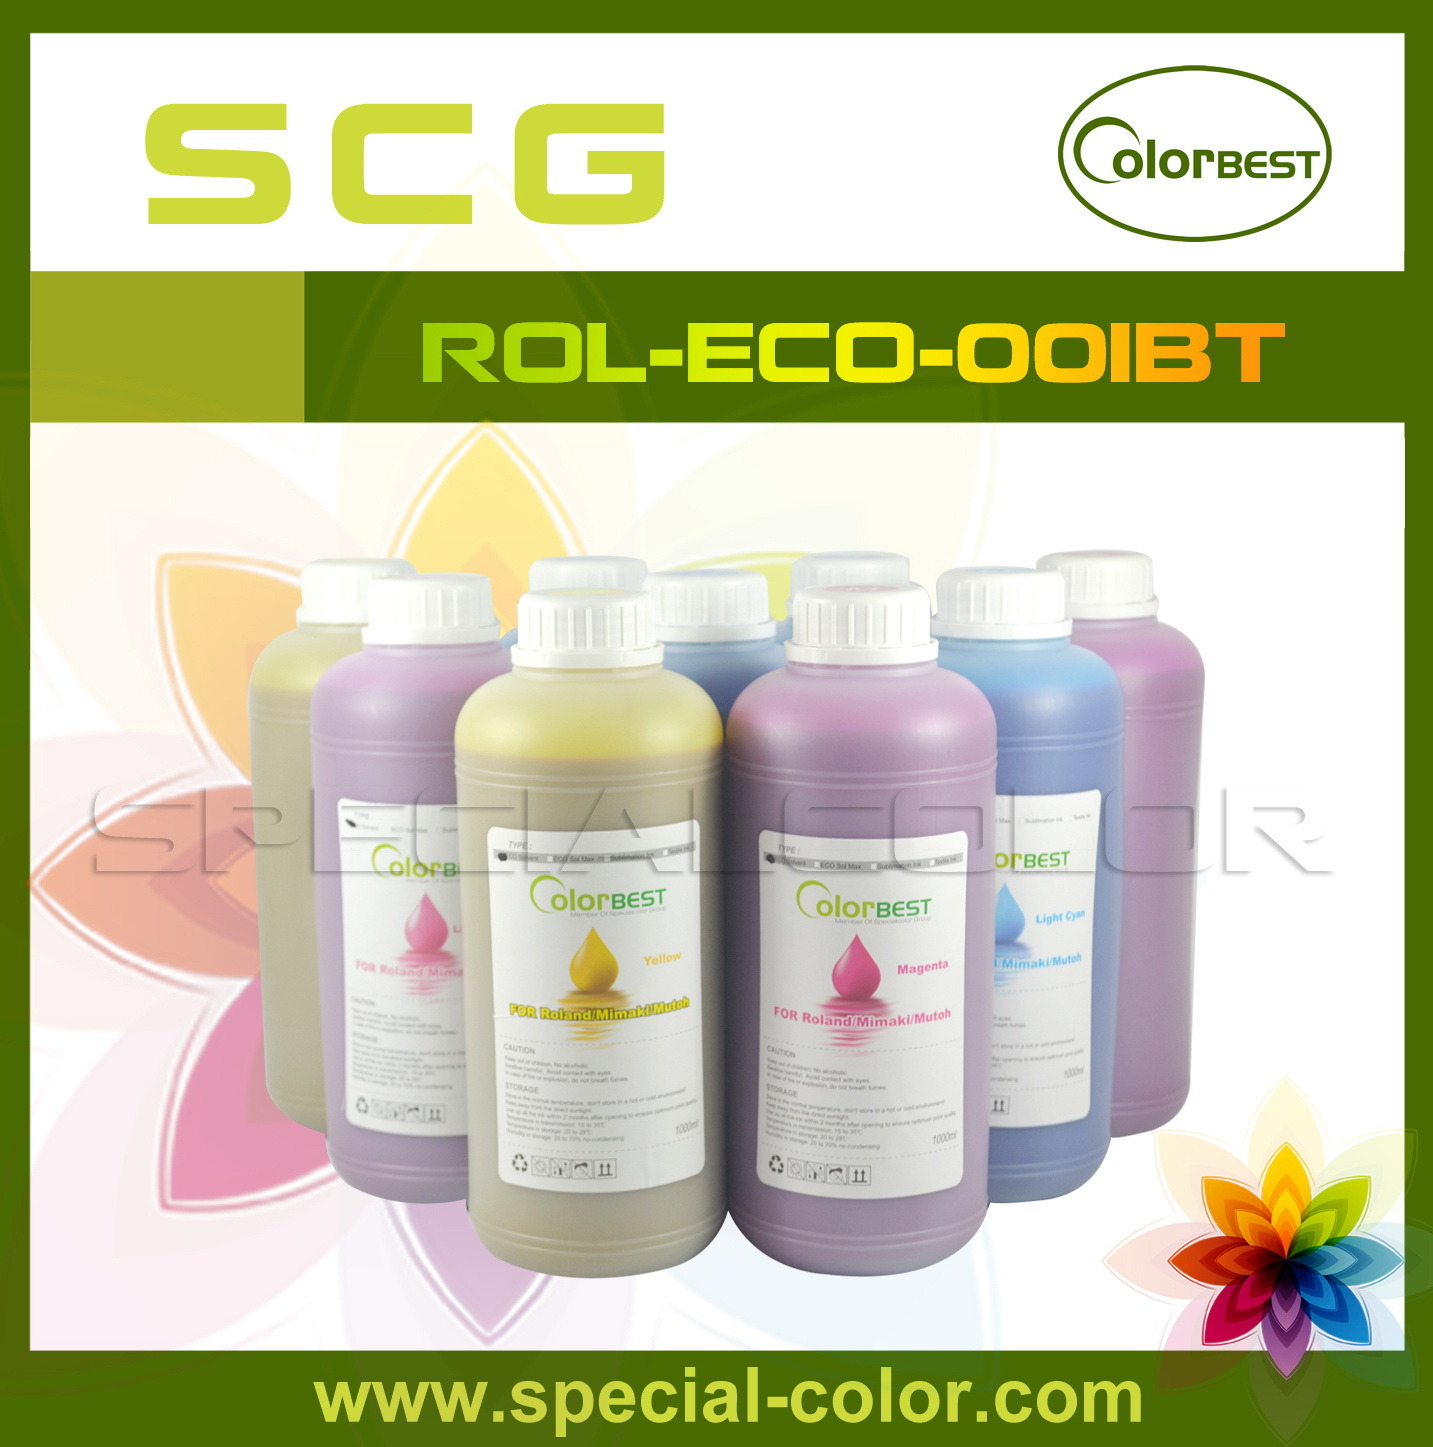 6 Colors 1000ml Eco Solvent Printing Ink for Roland Printer